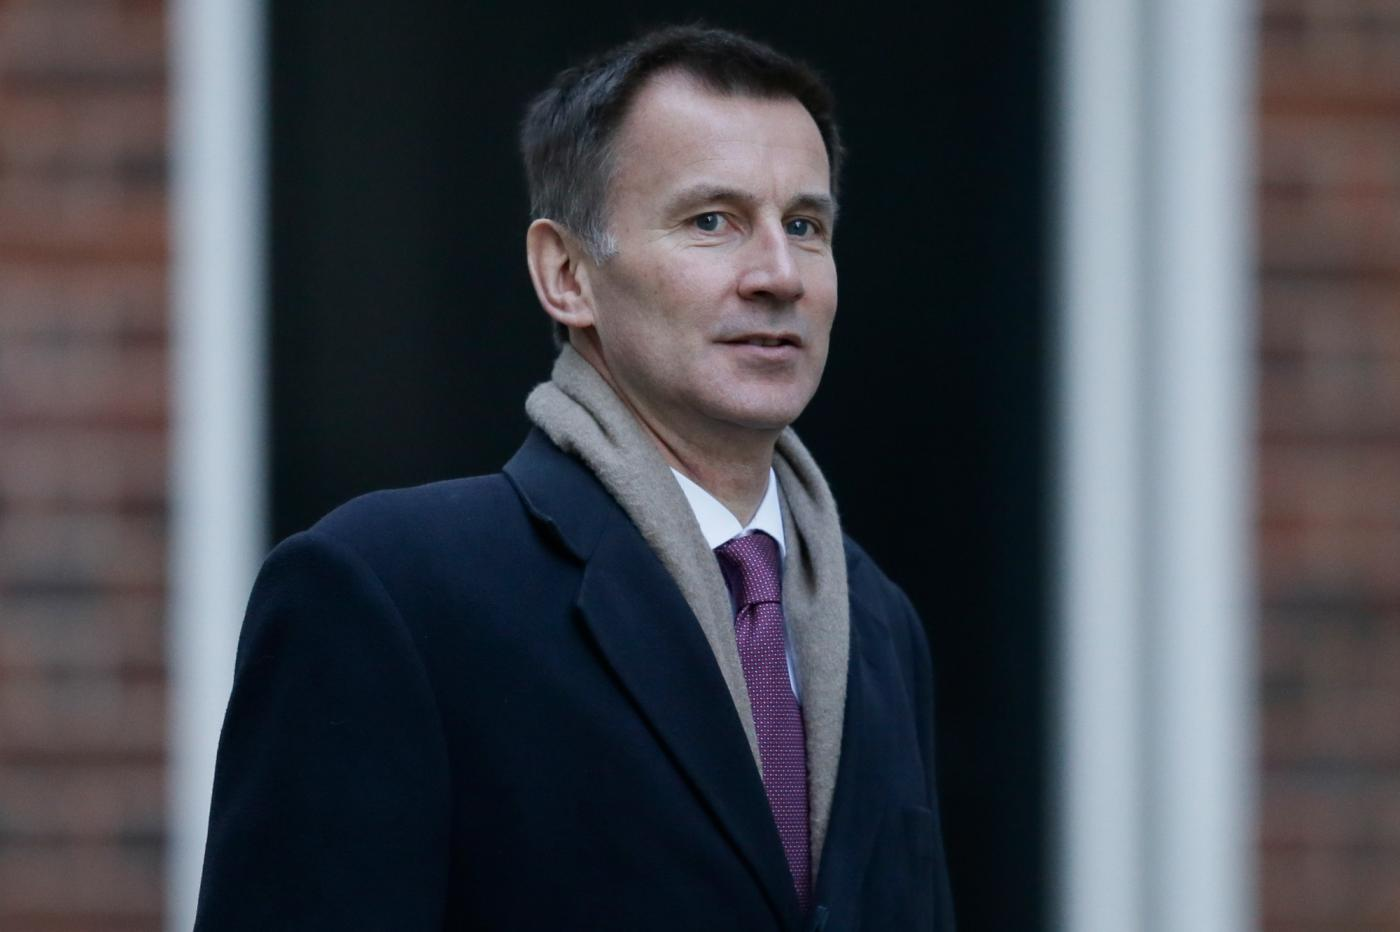 LONDON, Jan. 9, 2019 (Xinhua) -- British Foreign Secretary Jeremy Hunt arrives for a cabinet meeting at 10 Downing Street in London, Britain on Jan. 8. 2019. British government confirmed Tuesday that a delayed parliamentary vote on the Brexit deal will take place on Jan. 15. (Xinhua/Tim Ireland/IANS) by .